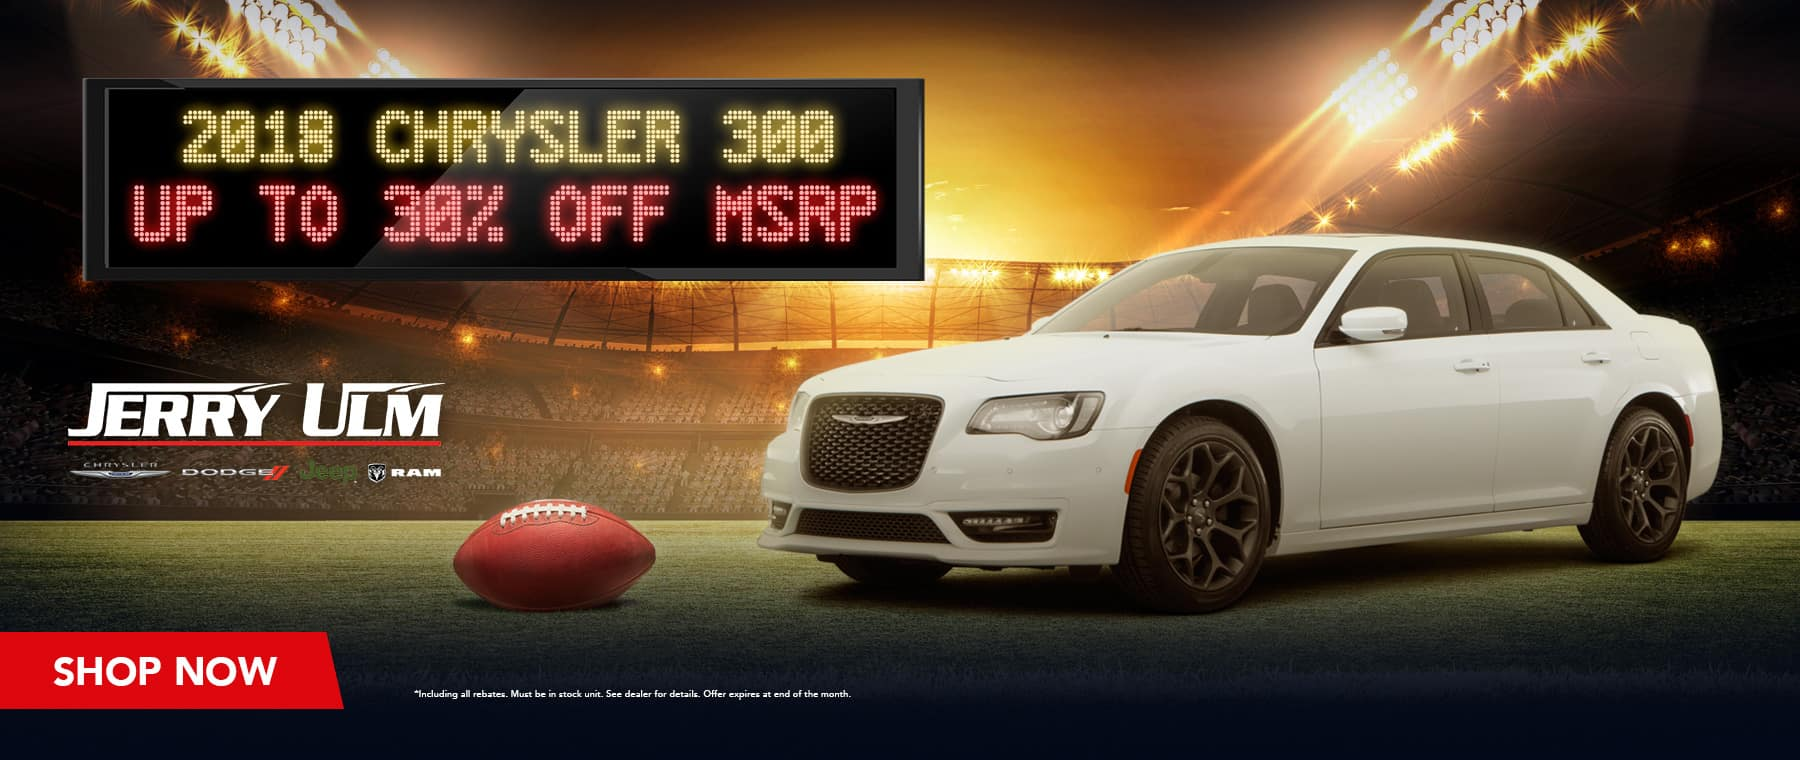 2018 Chrysler 300 special